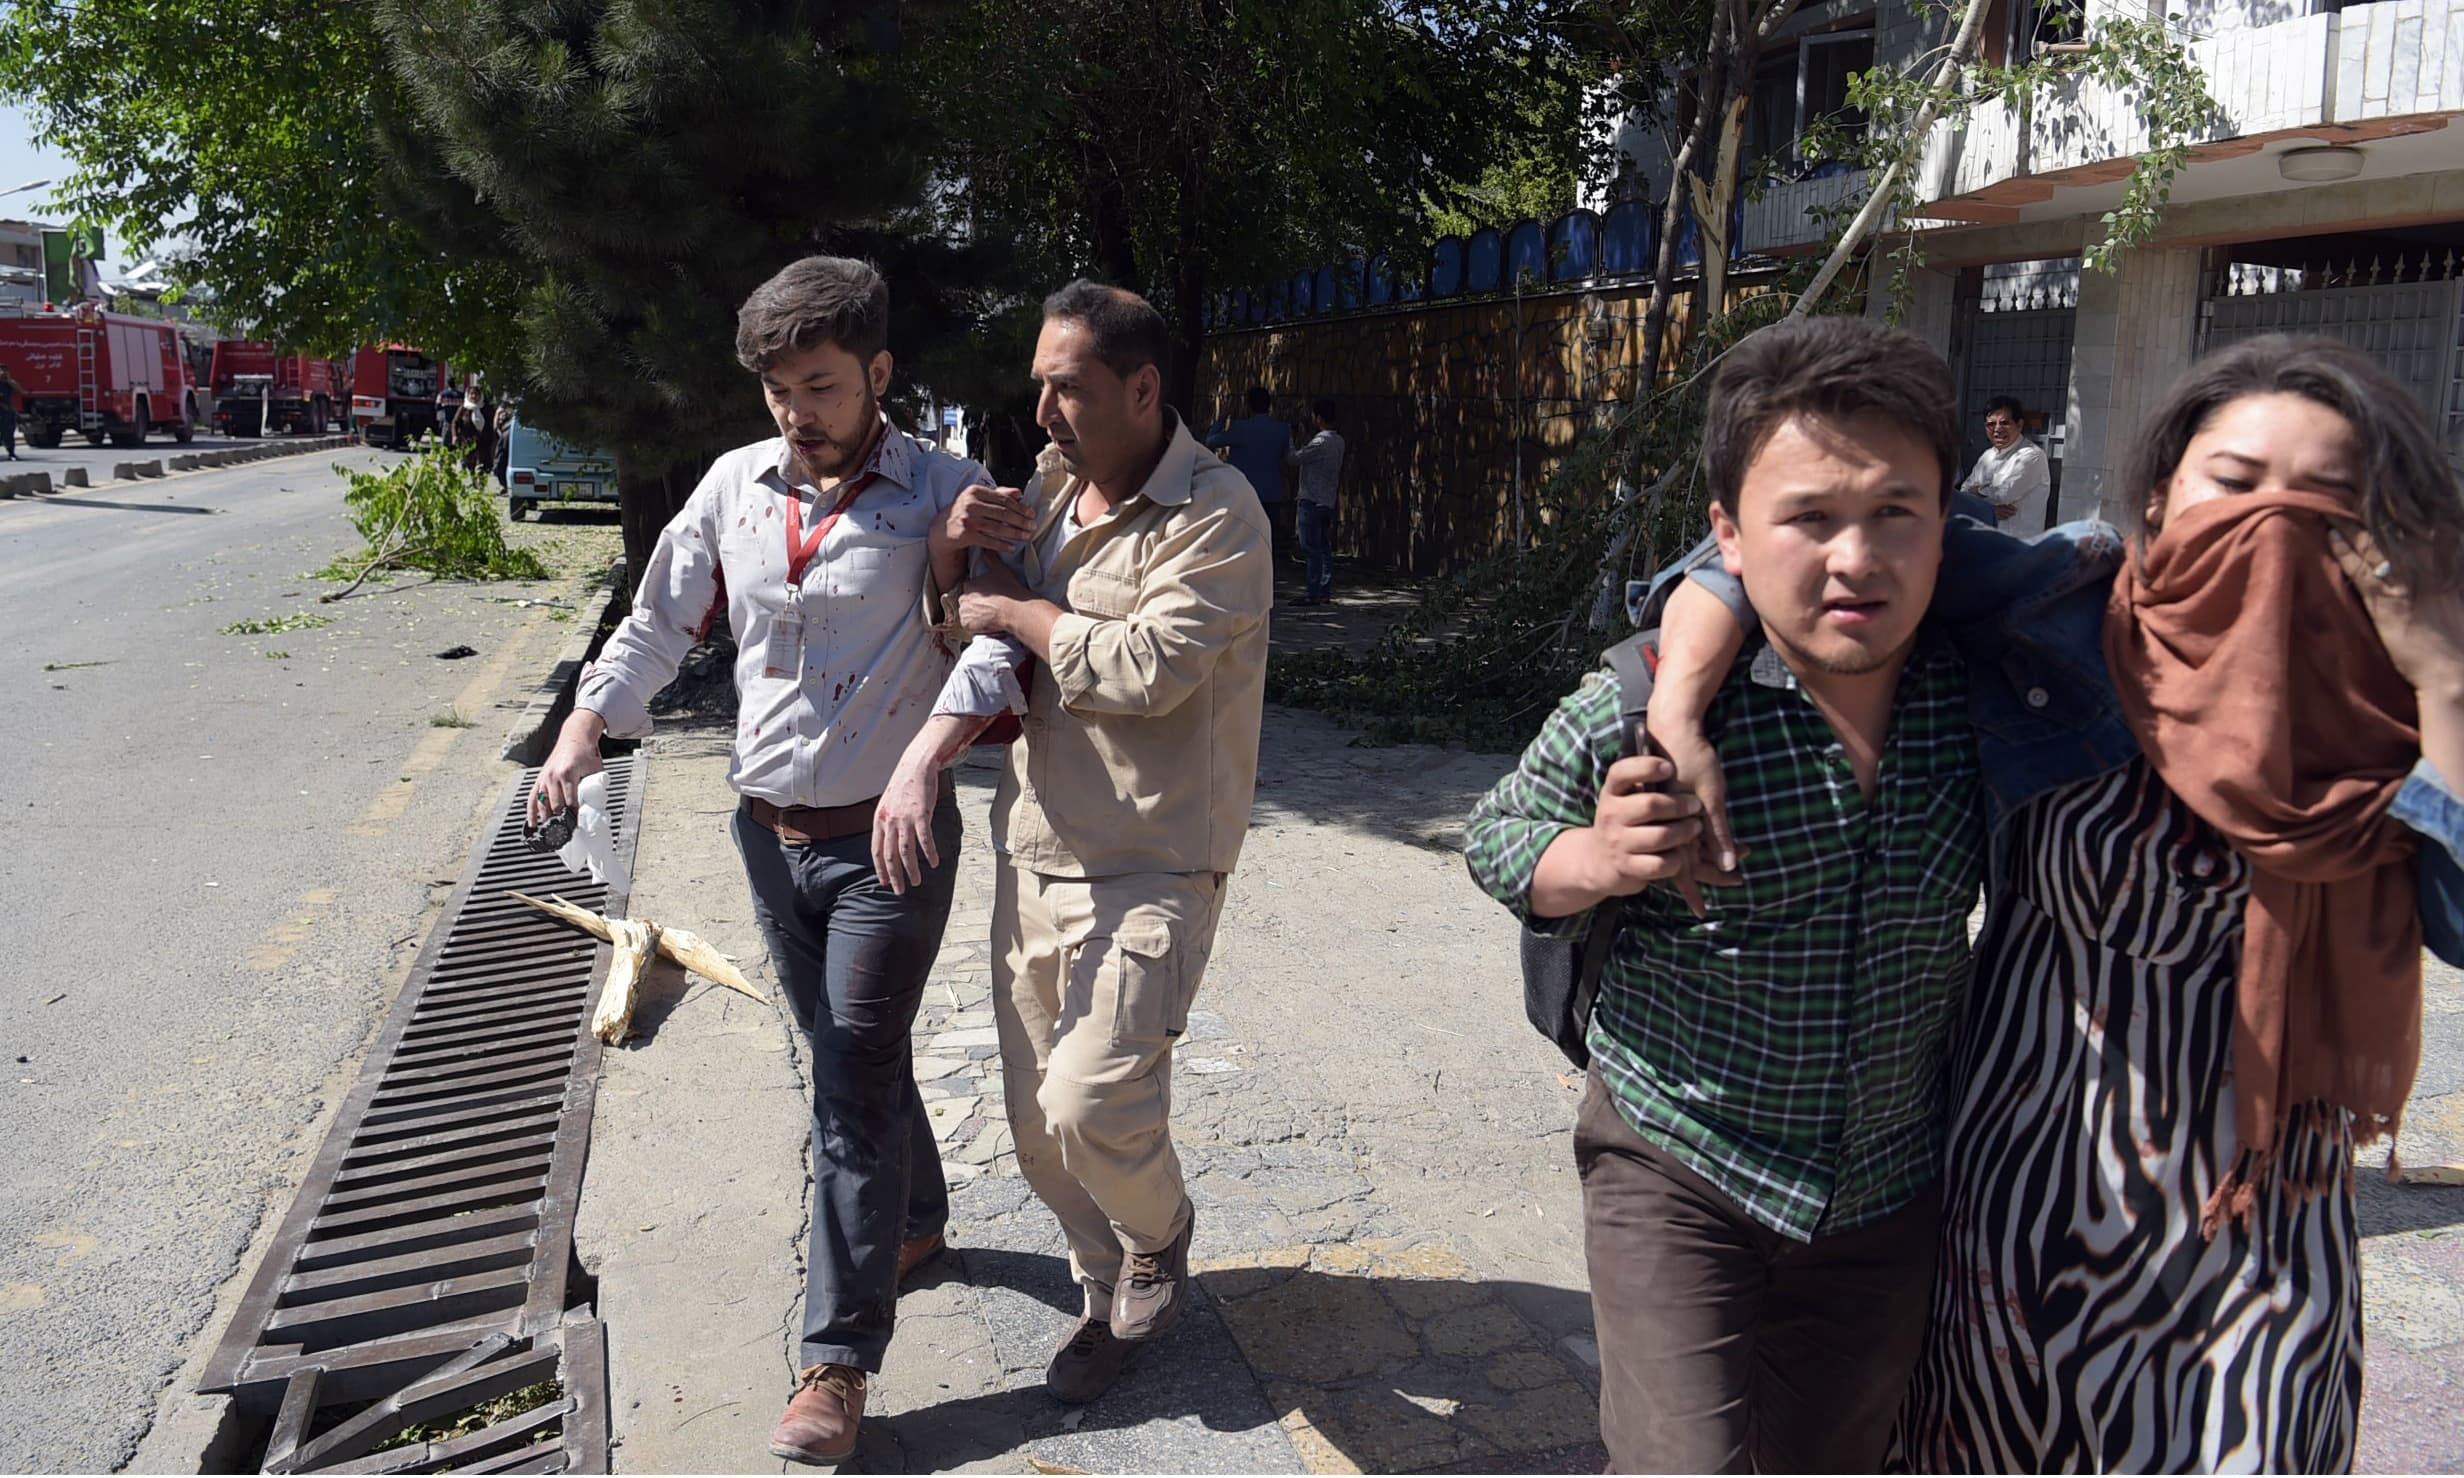 Afghan men provide assistance to the wounded at the site of a car bomb attack in Kabul. —AFP